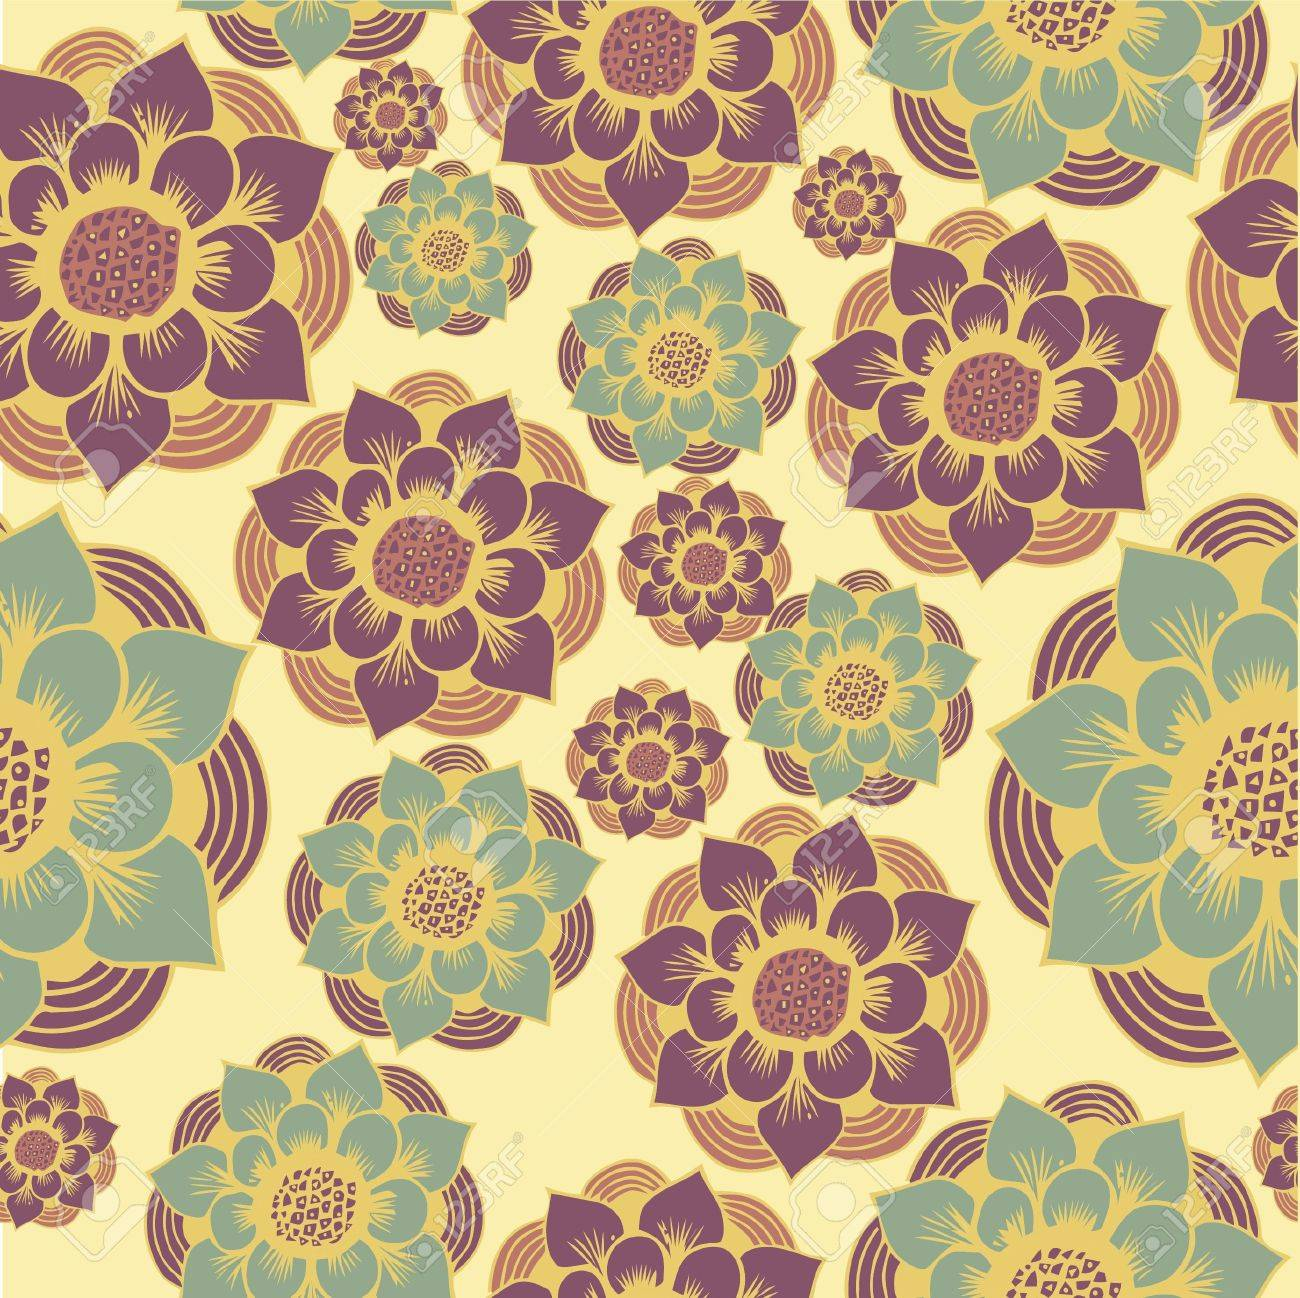 Abstract Elegance Seamless pattern with floral background vintage style Stock Vector - 17031525